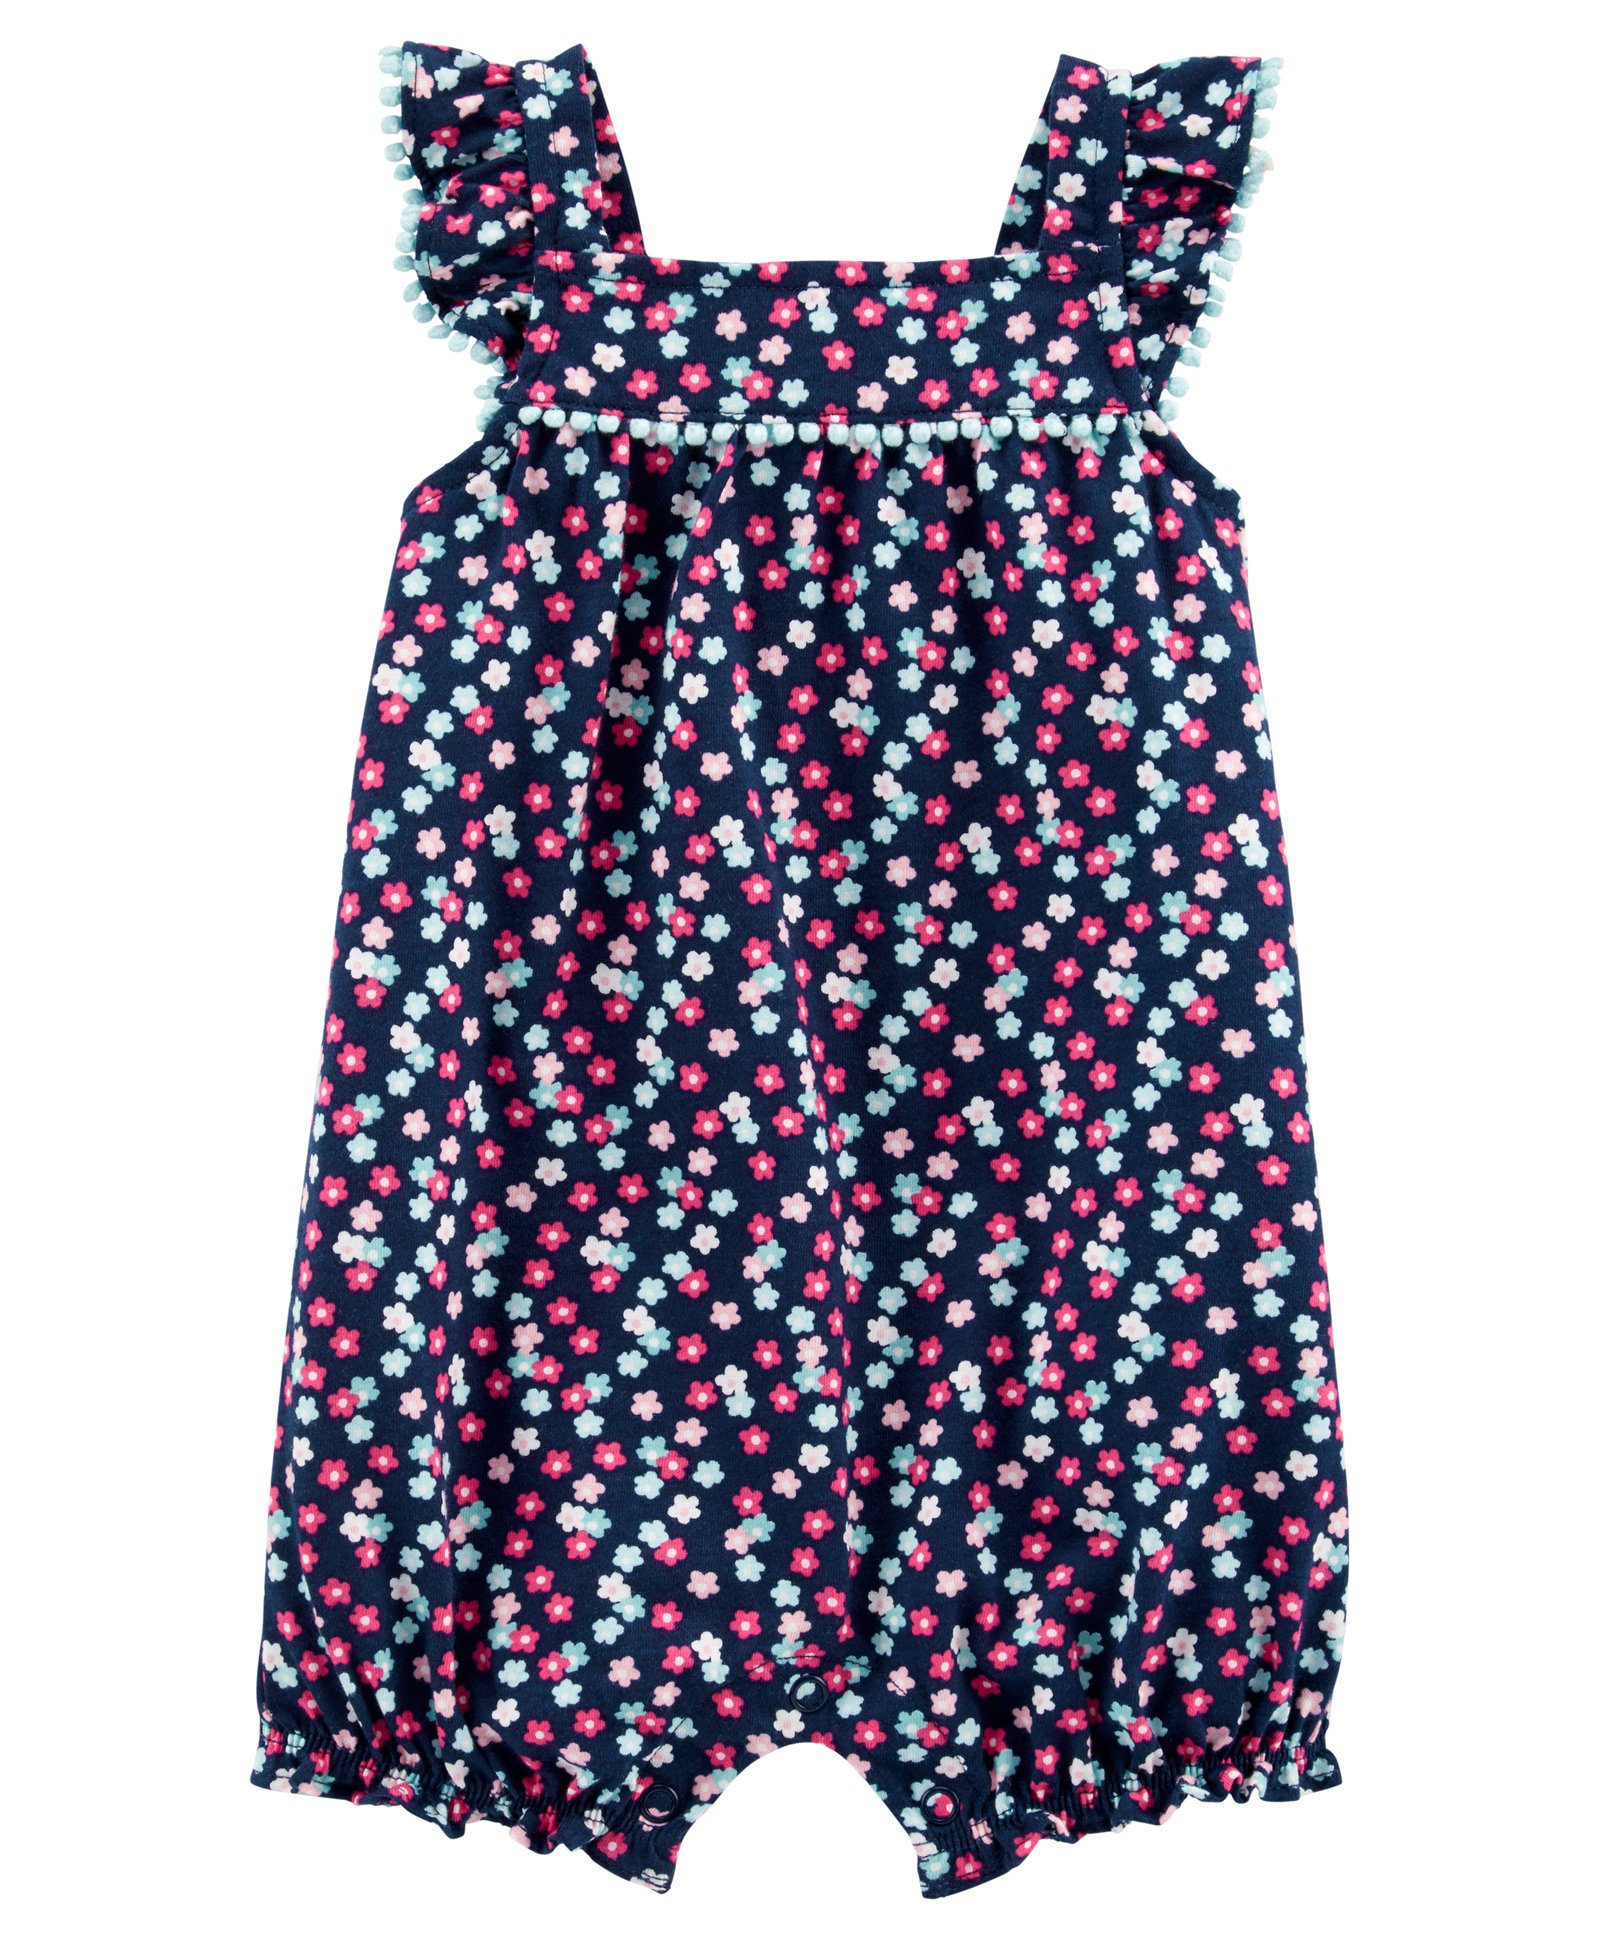 24 month navy romper with flowers